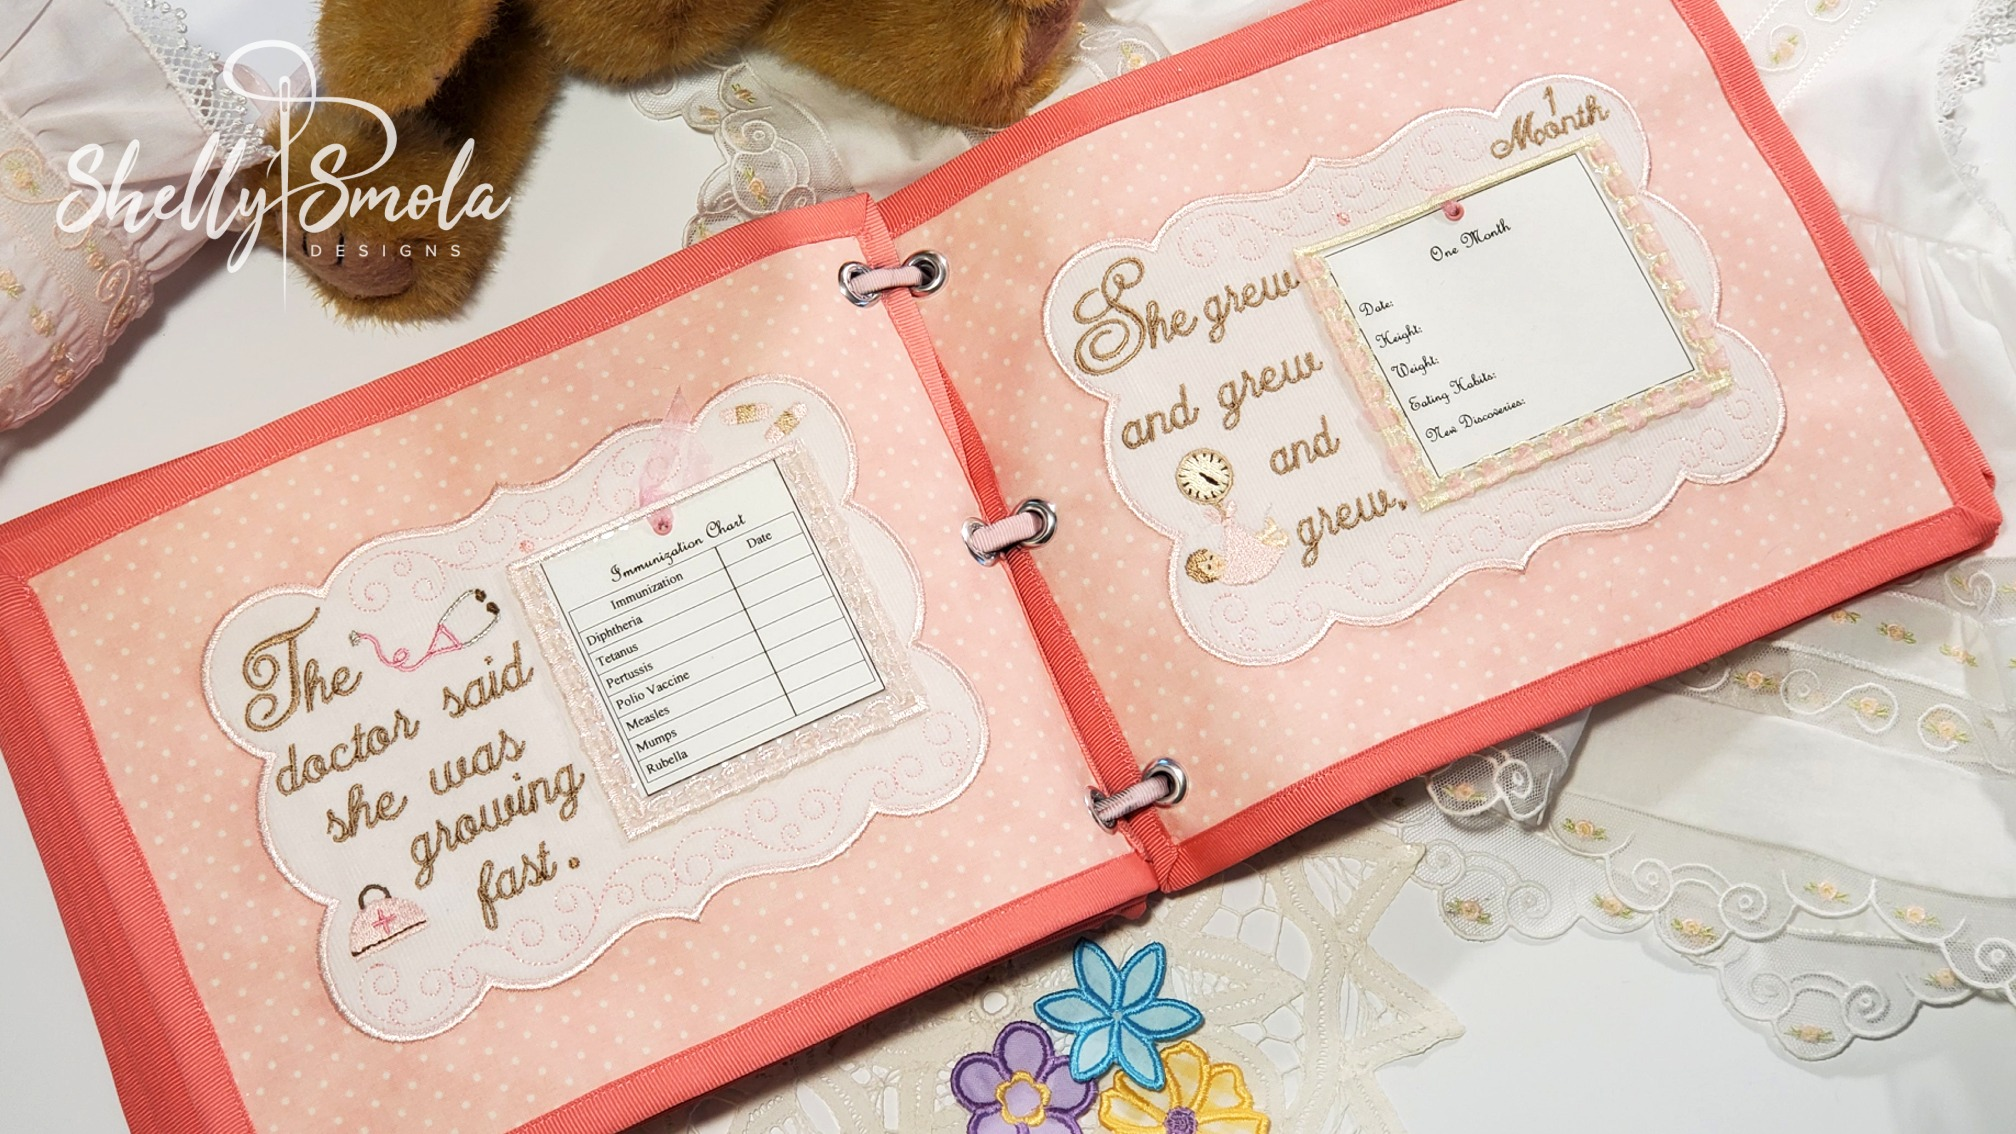 Baby Girl Book by Shelly Smola